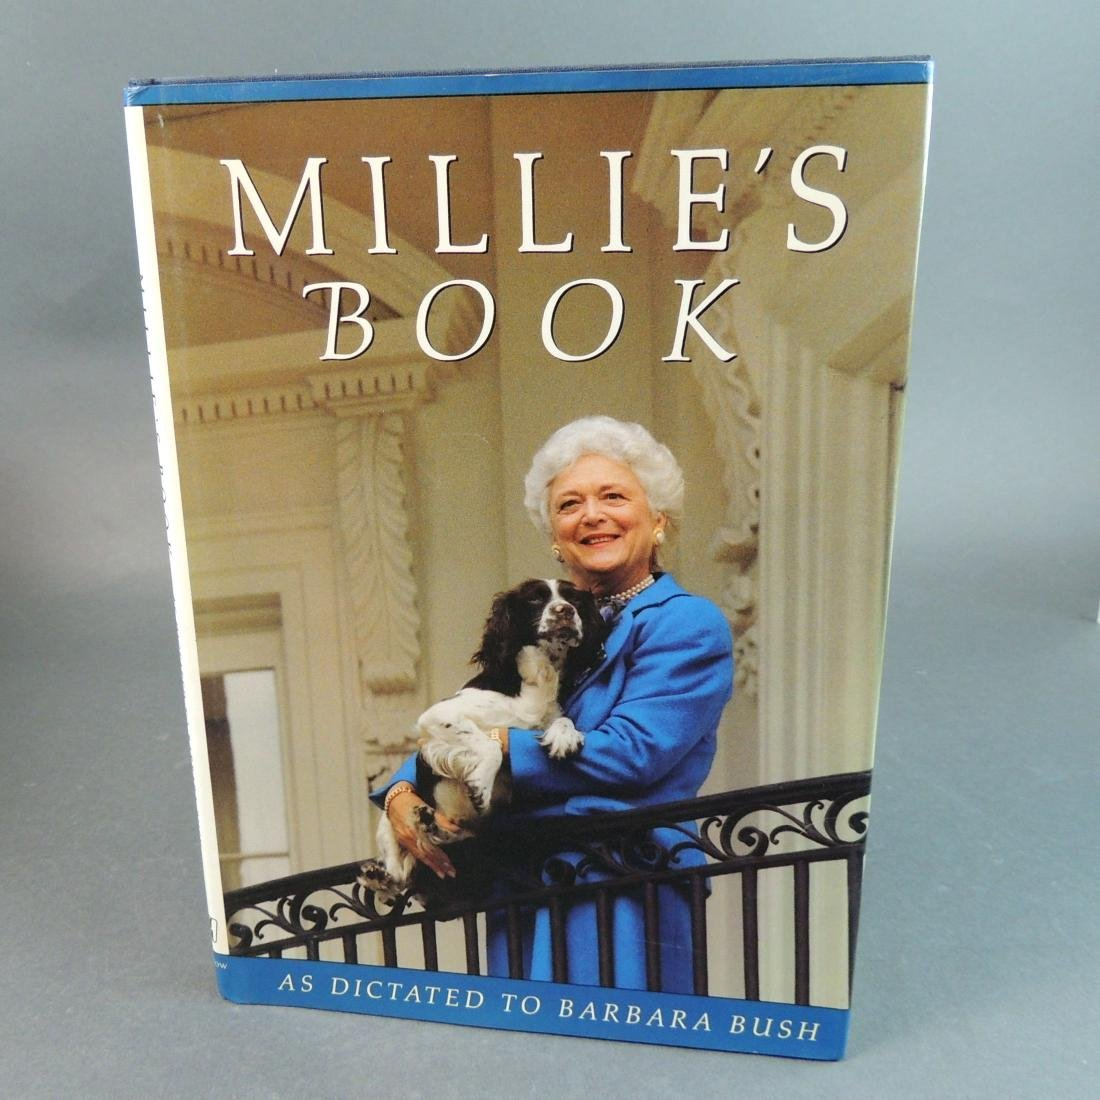 Millie's Book As Dictated to Barbara Bush - Signed